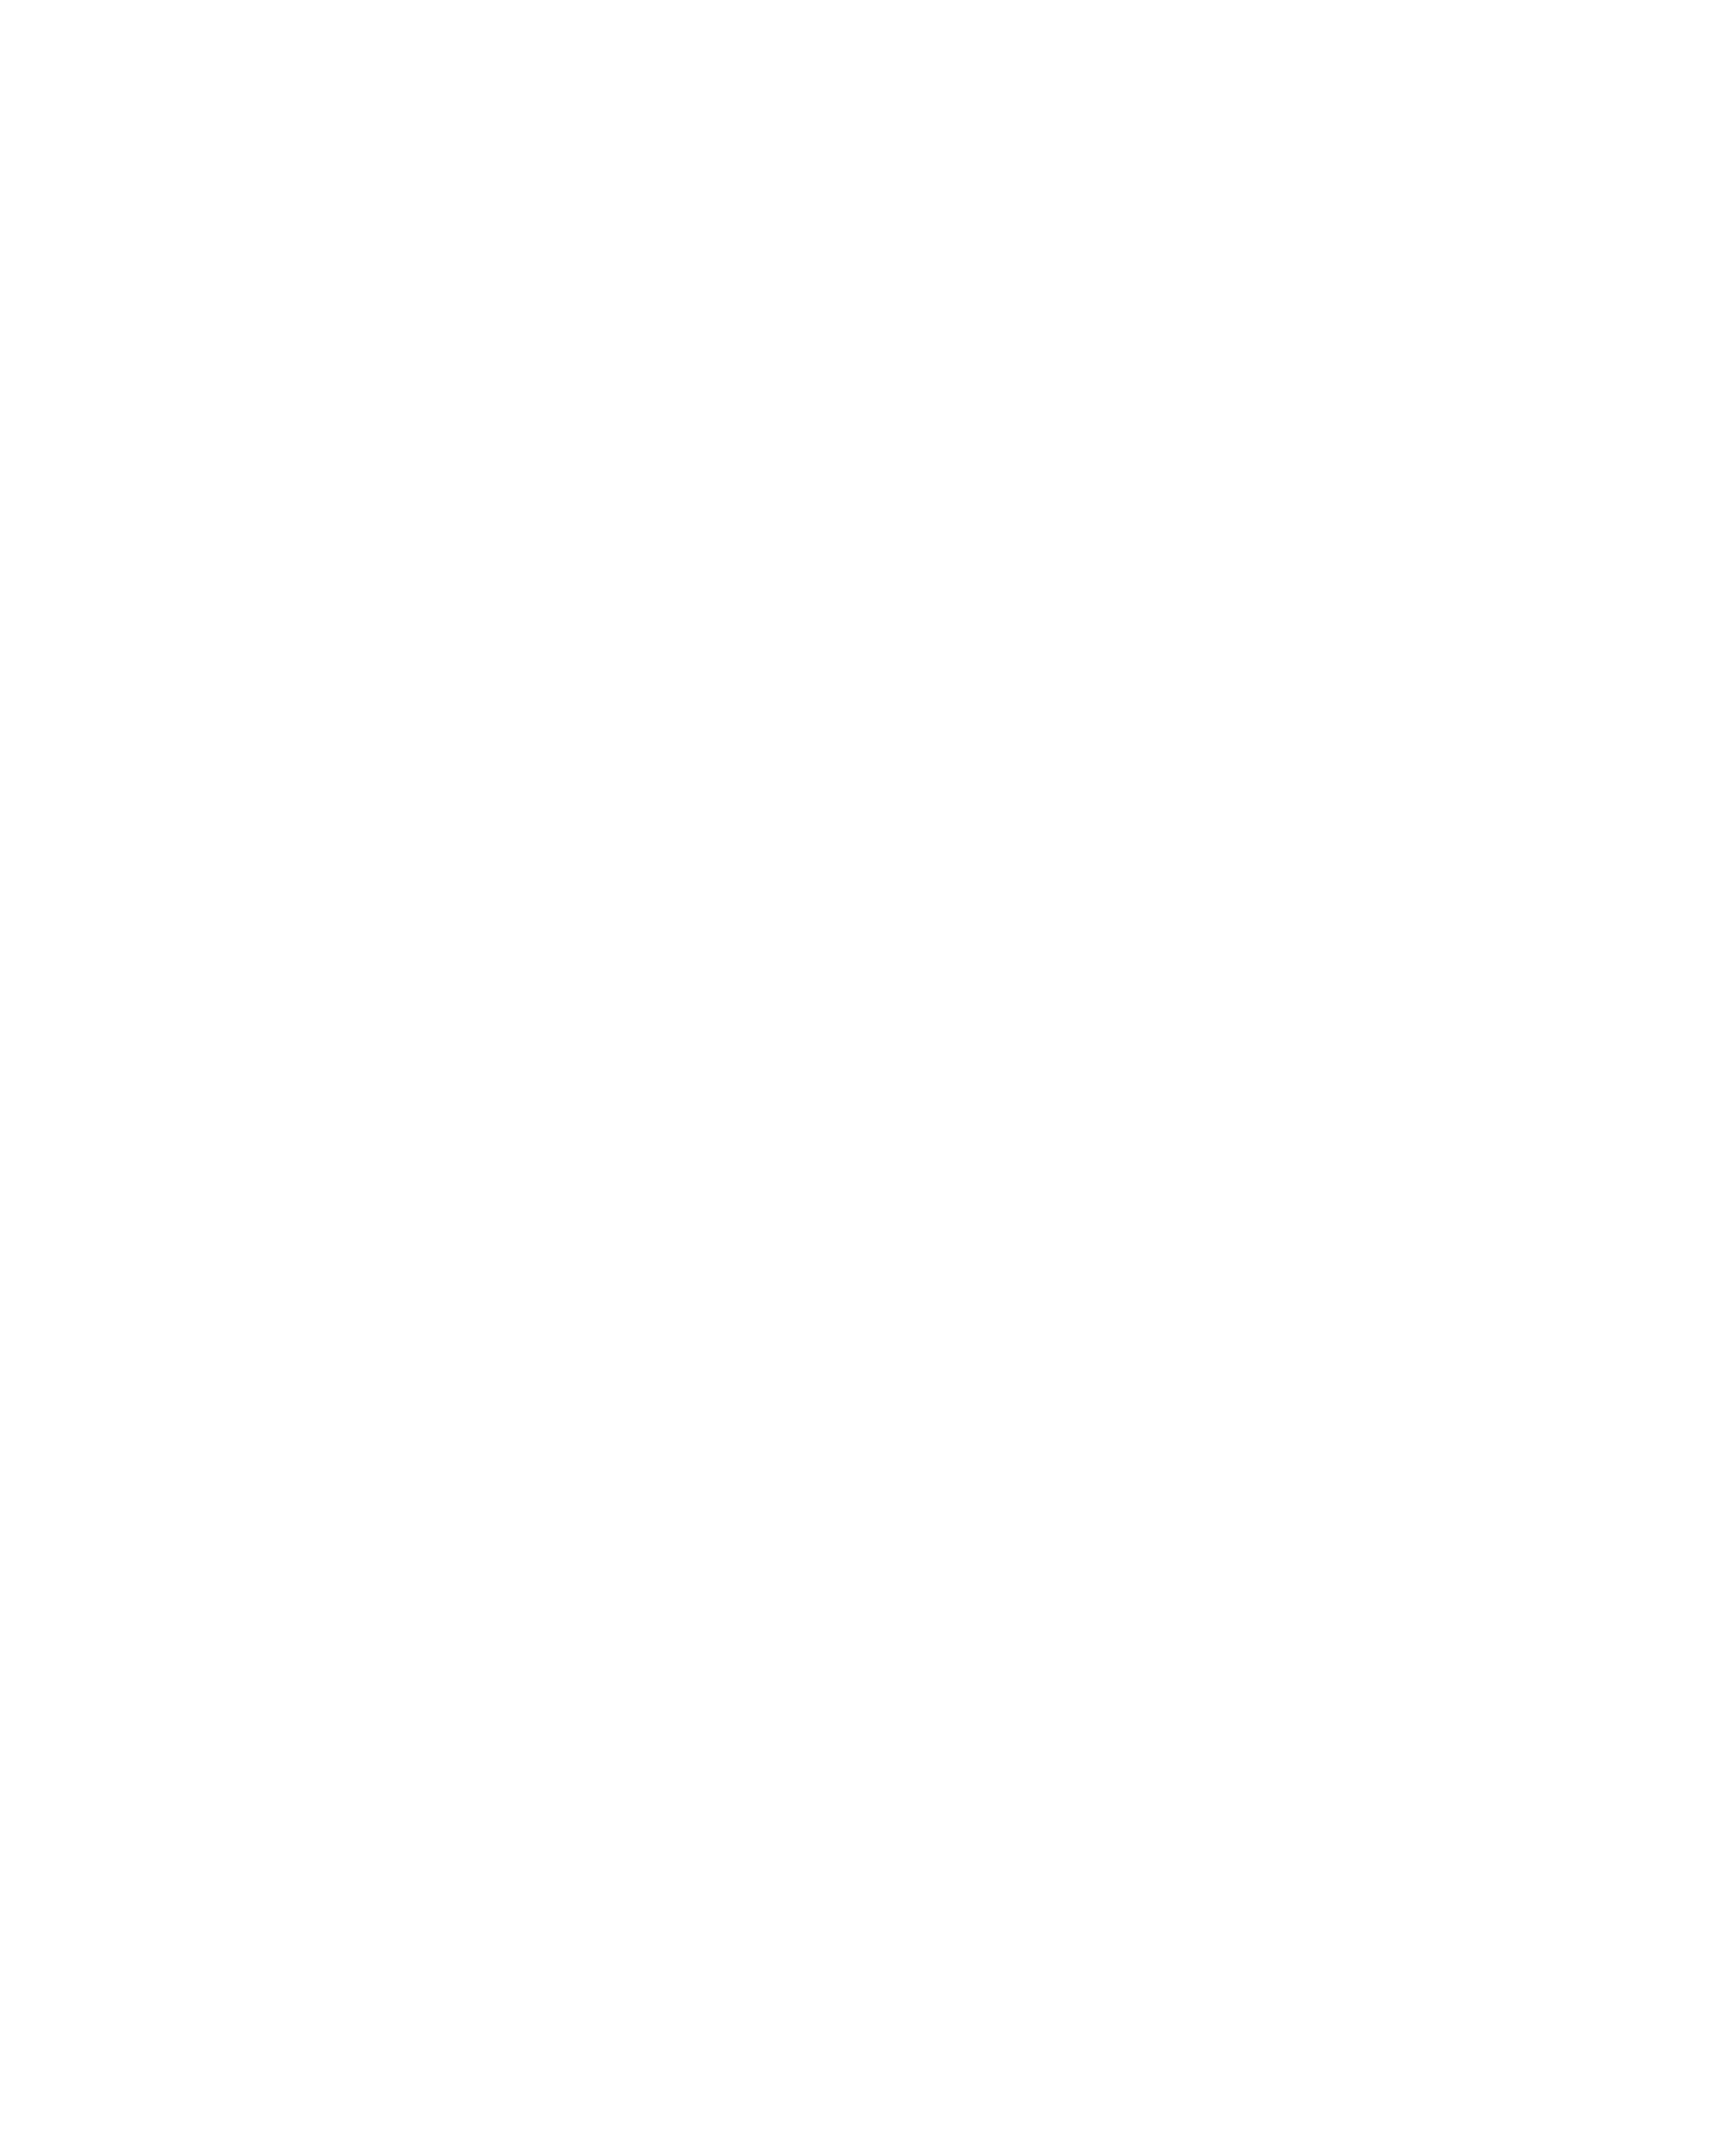 Journal of Cyber Resilience